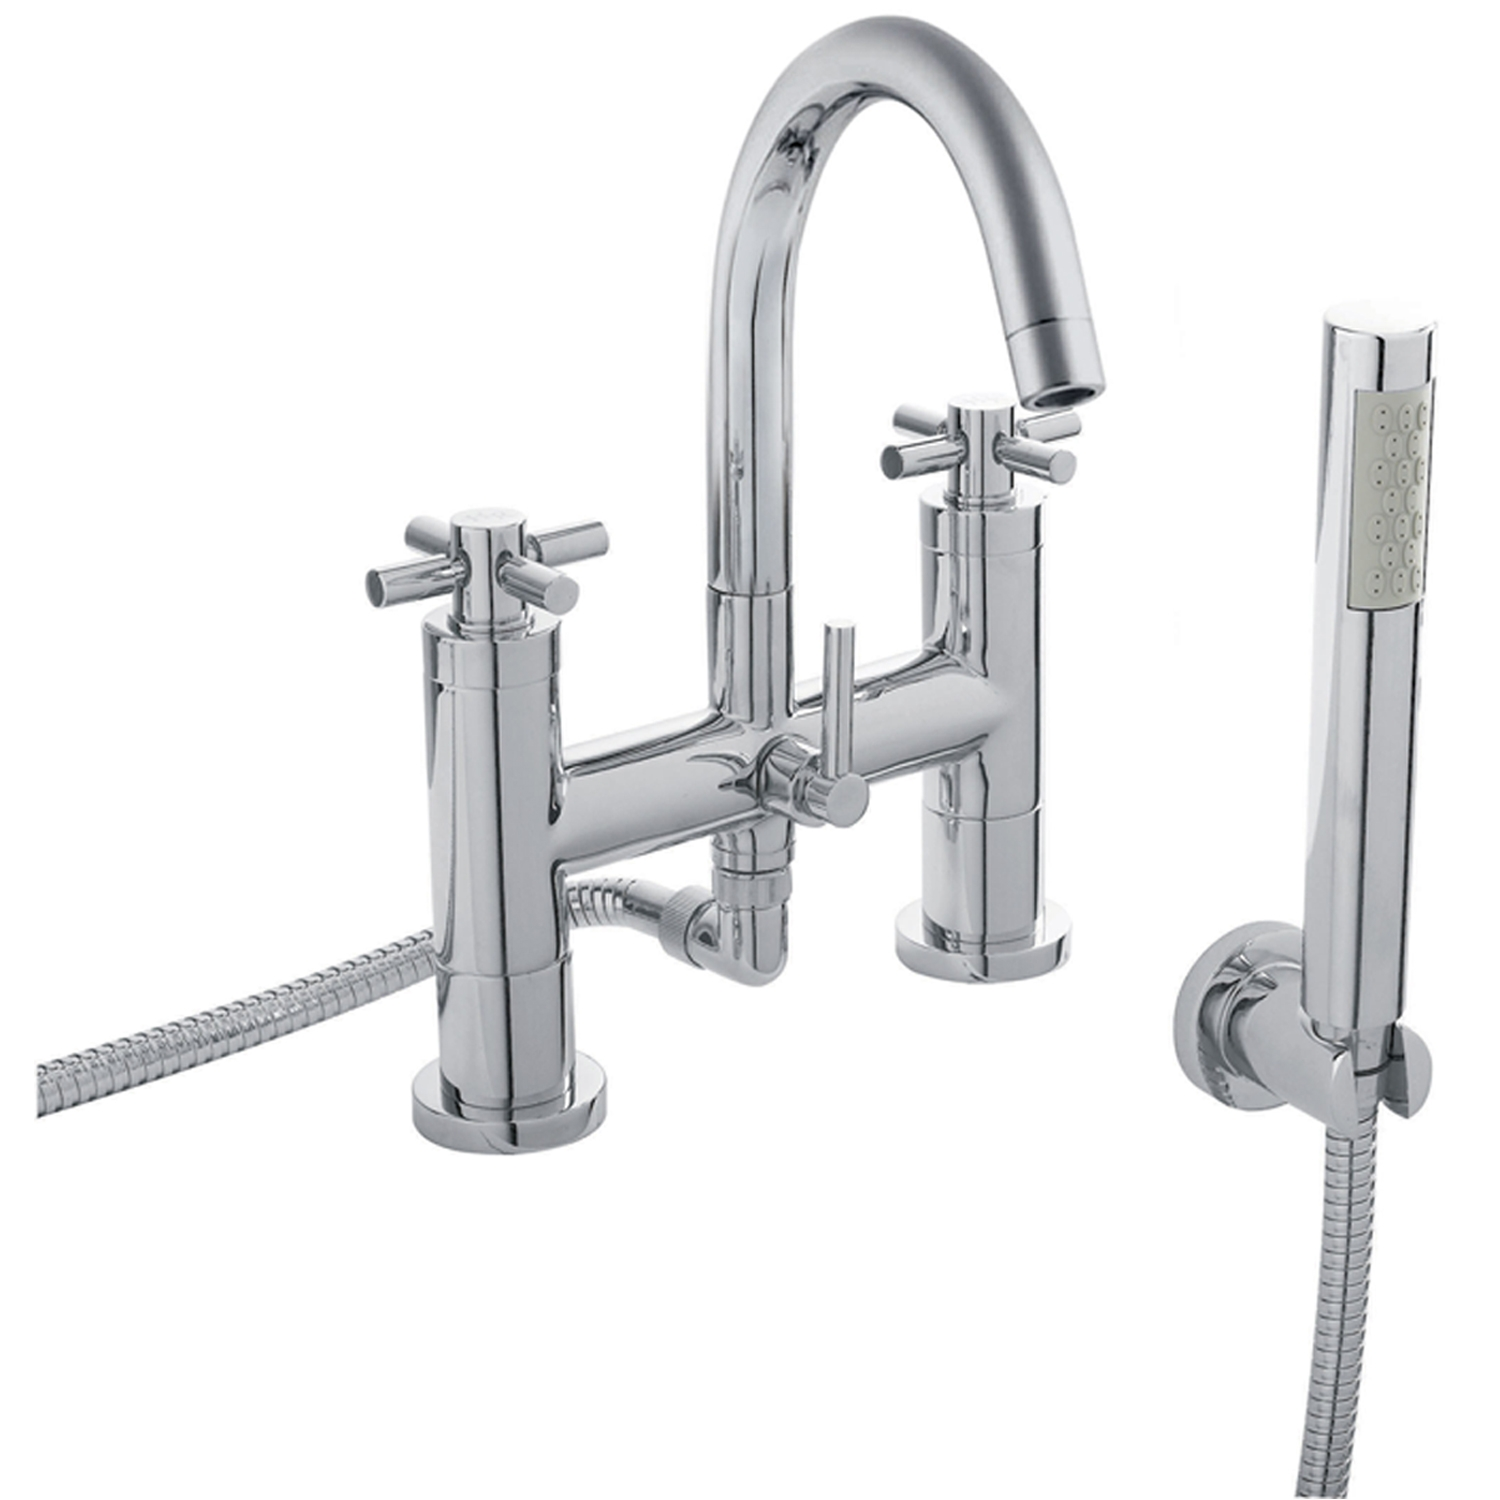 Hudson Reed Tec Crosshead 3 Hole Basin Mixer Tap and Bath Shower Mixer Tap, Chrome